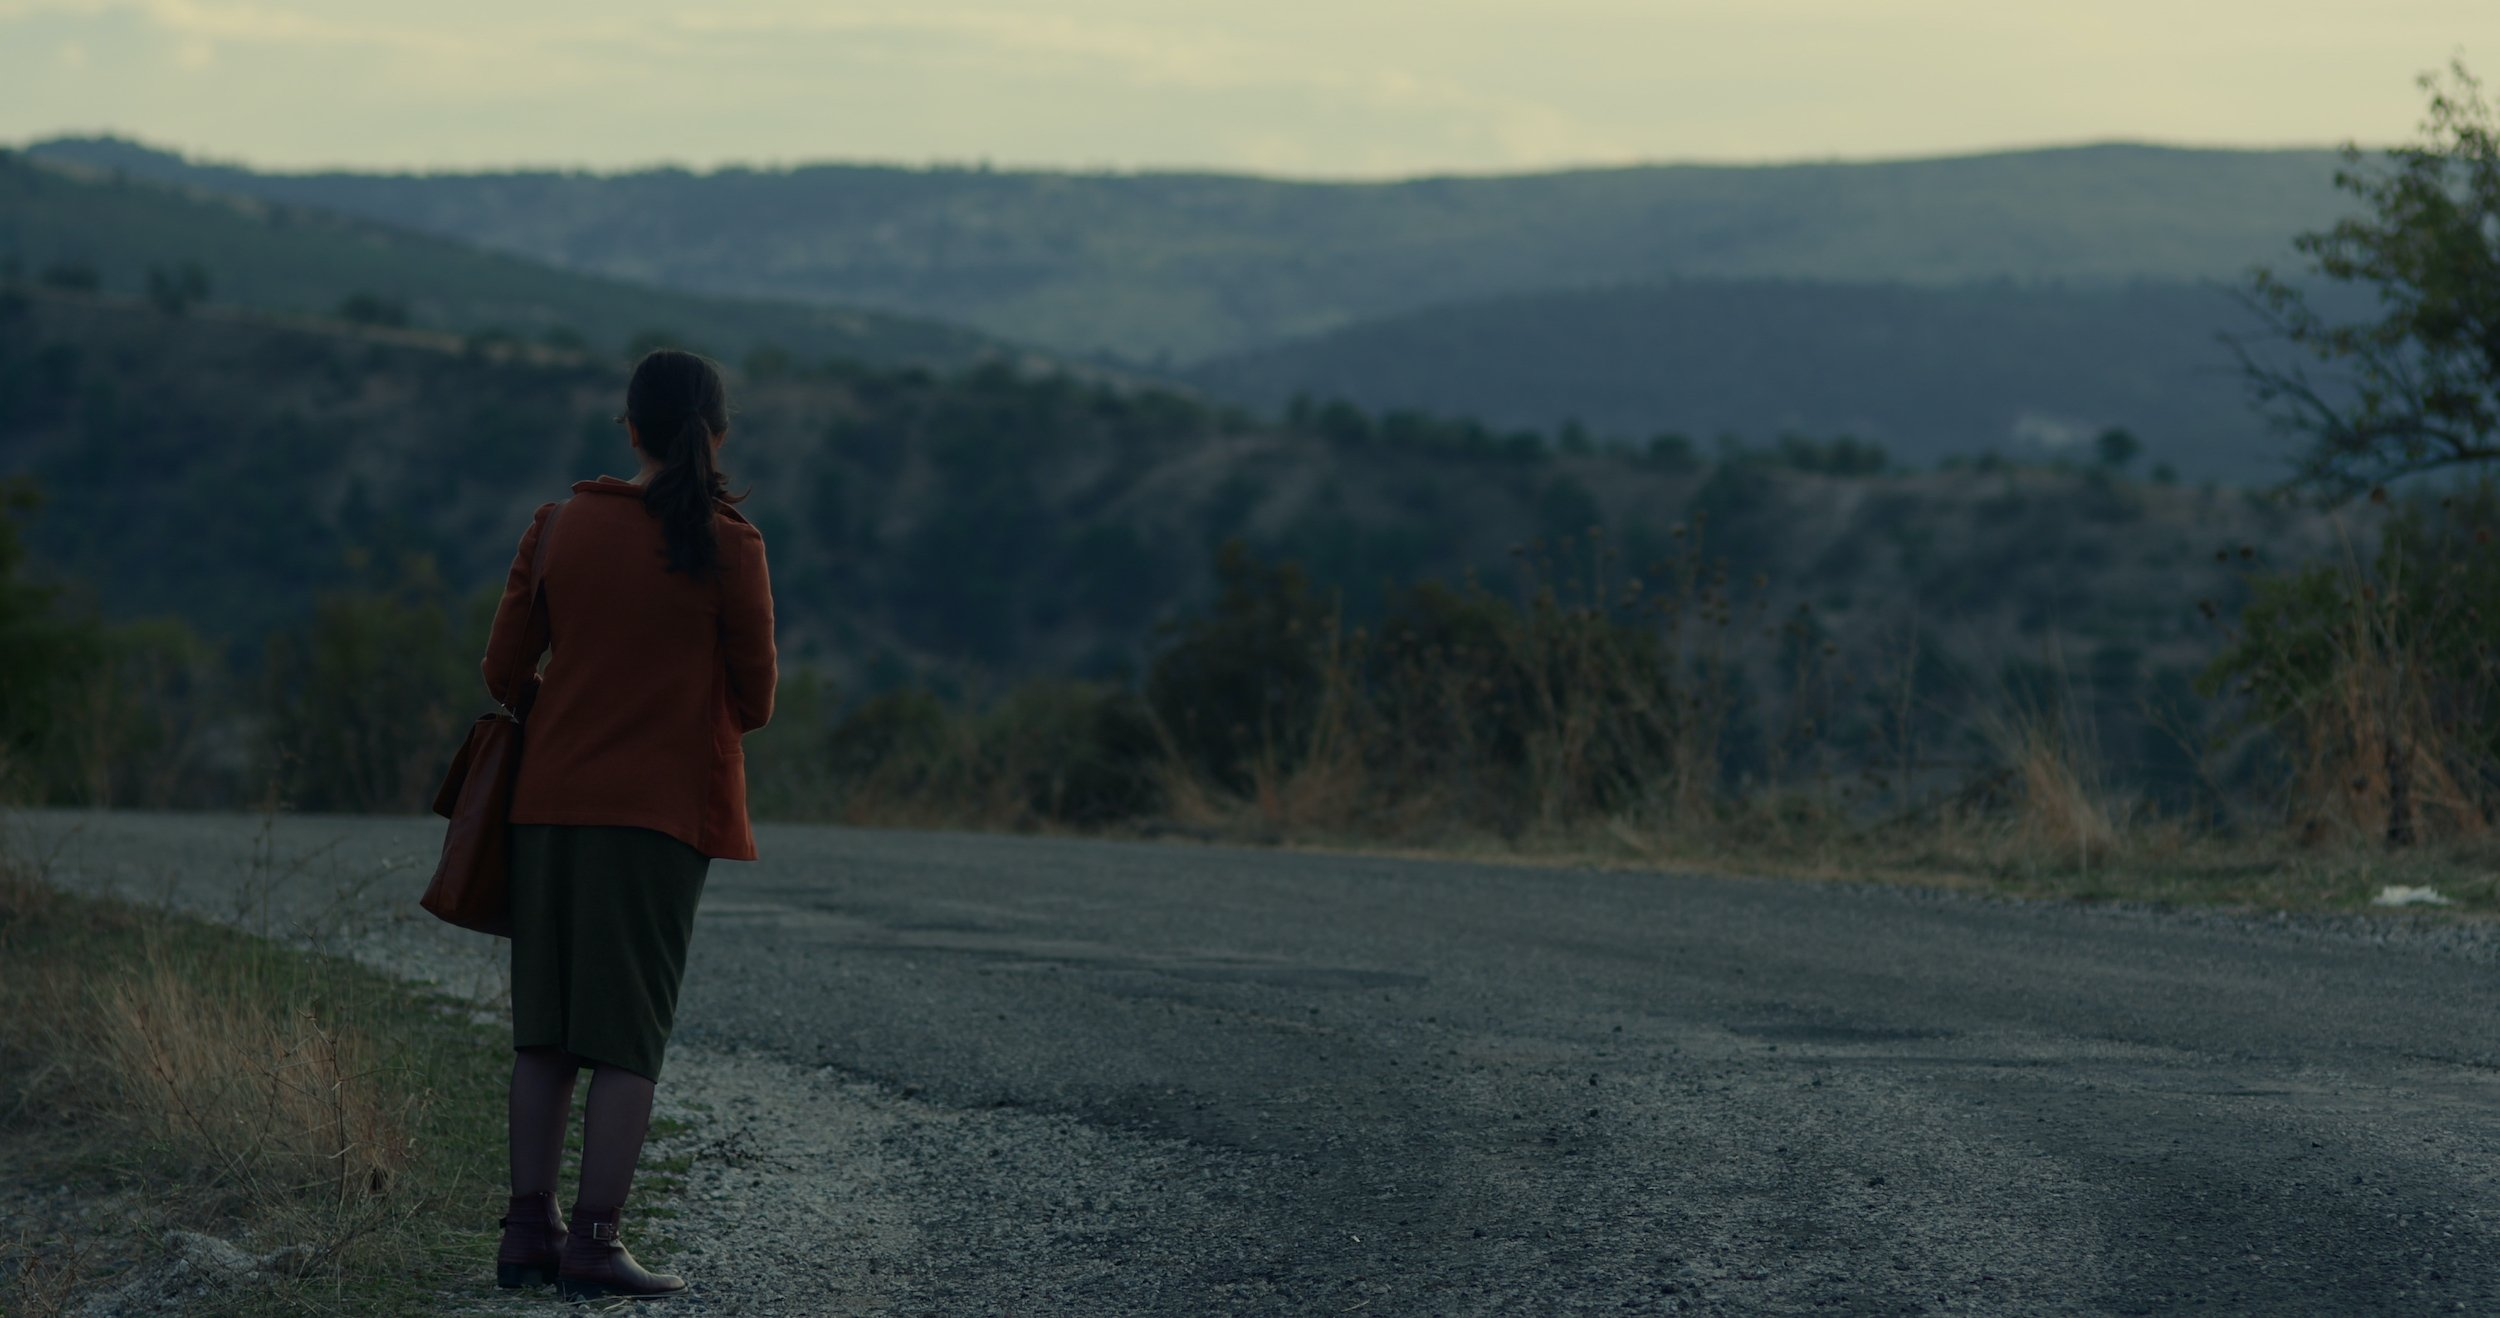 'Servis' is about a school teacher who struggles for her students.